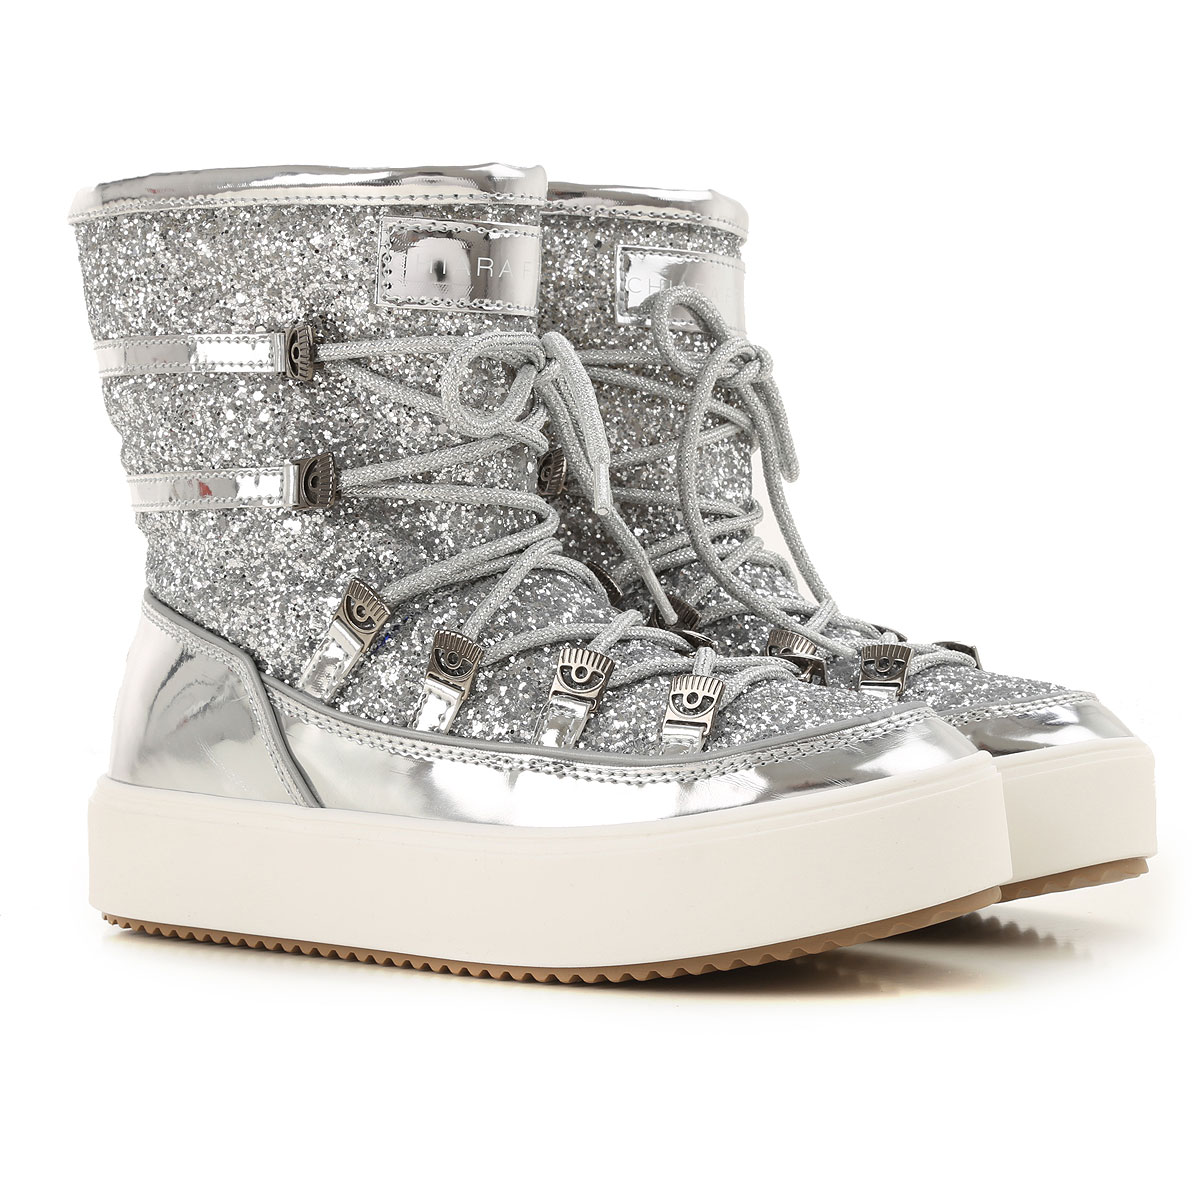 Chiara Ferragni Boots for Women, Booties, Silver, Leather, 2019, 6 7 8